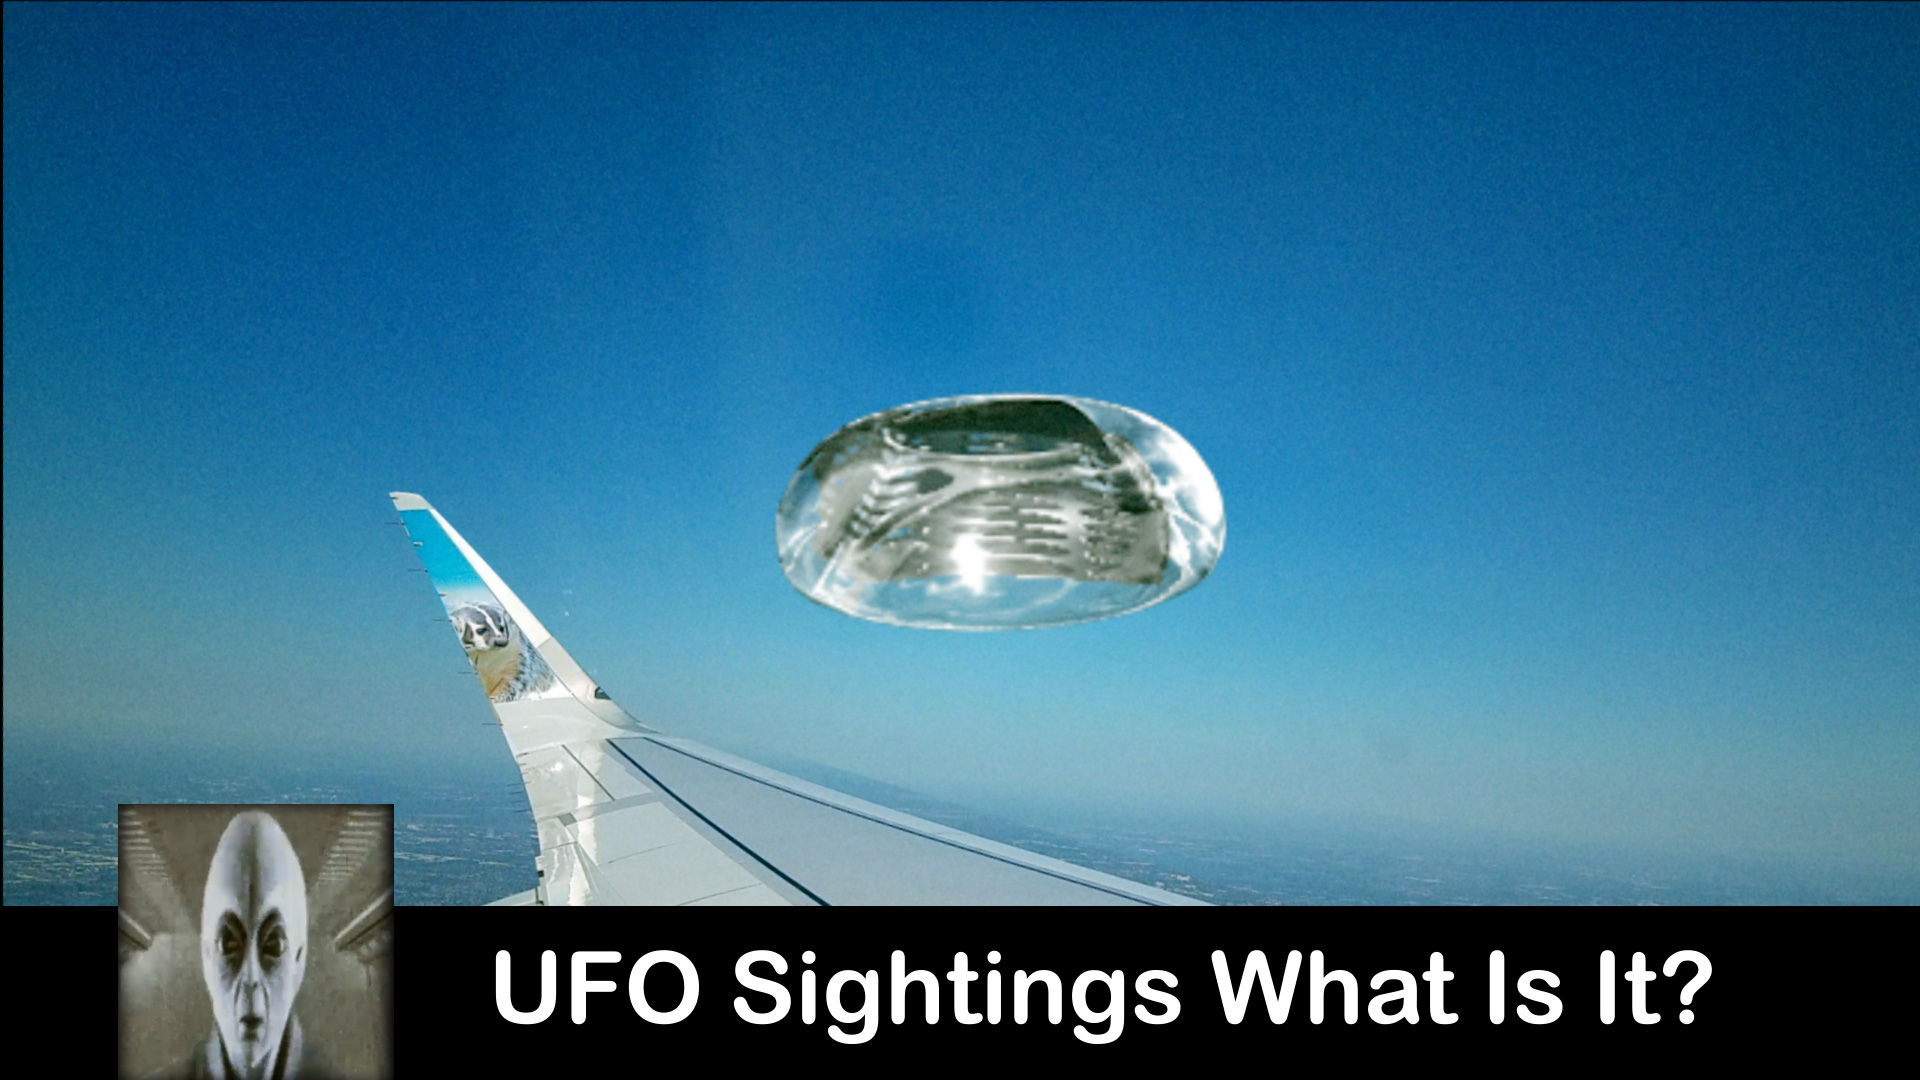 UFO Sightings What Is It July 2017